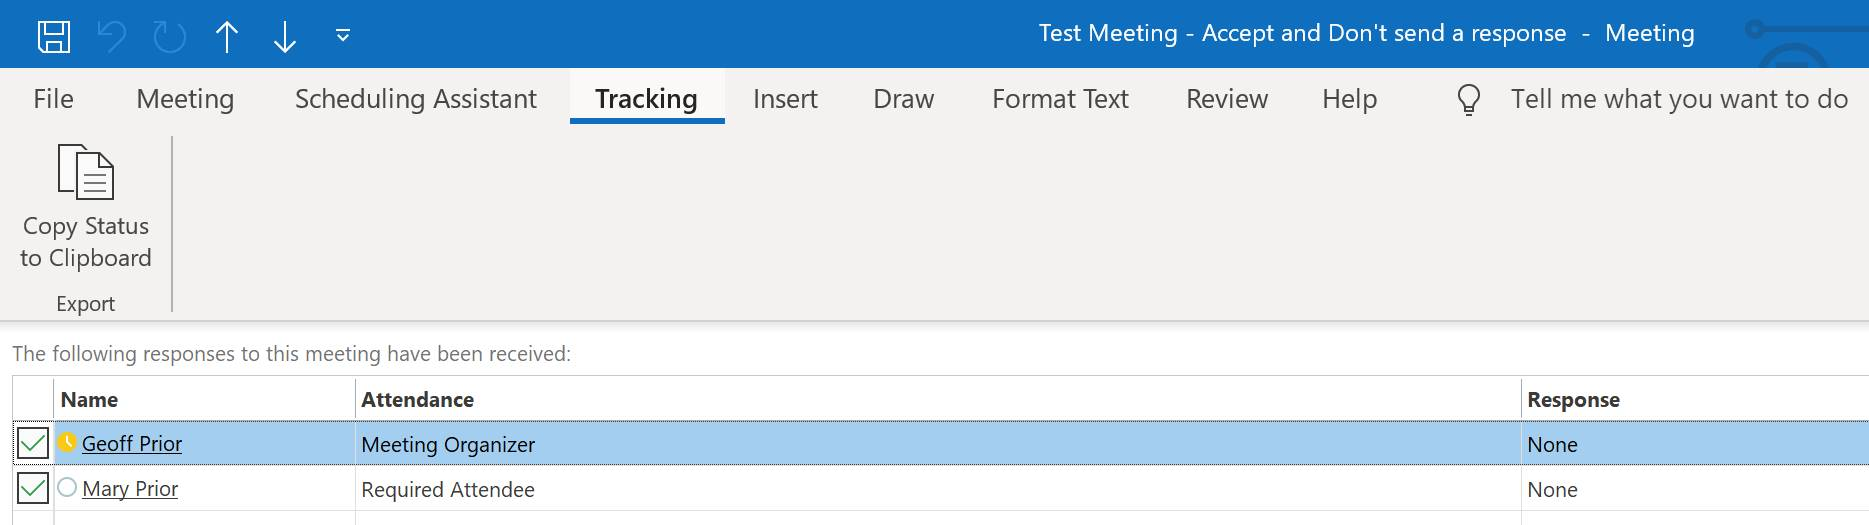 Are you accepting your meeting invites in Outlook correctly?